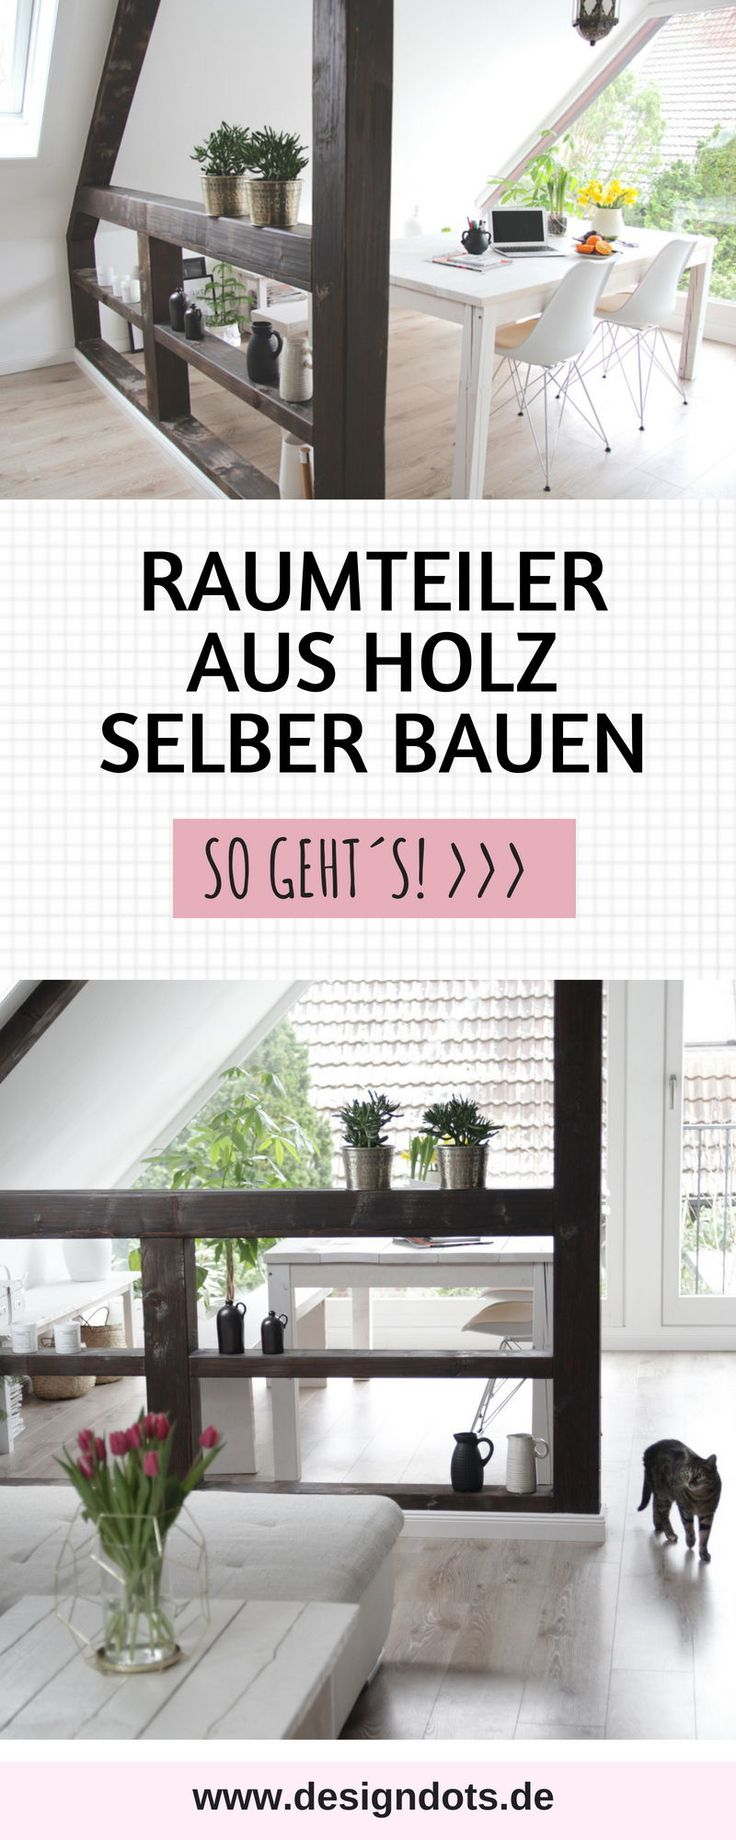 Build room divider in half-timbered look yourself